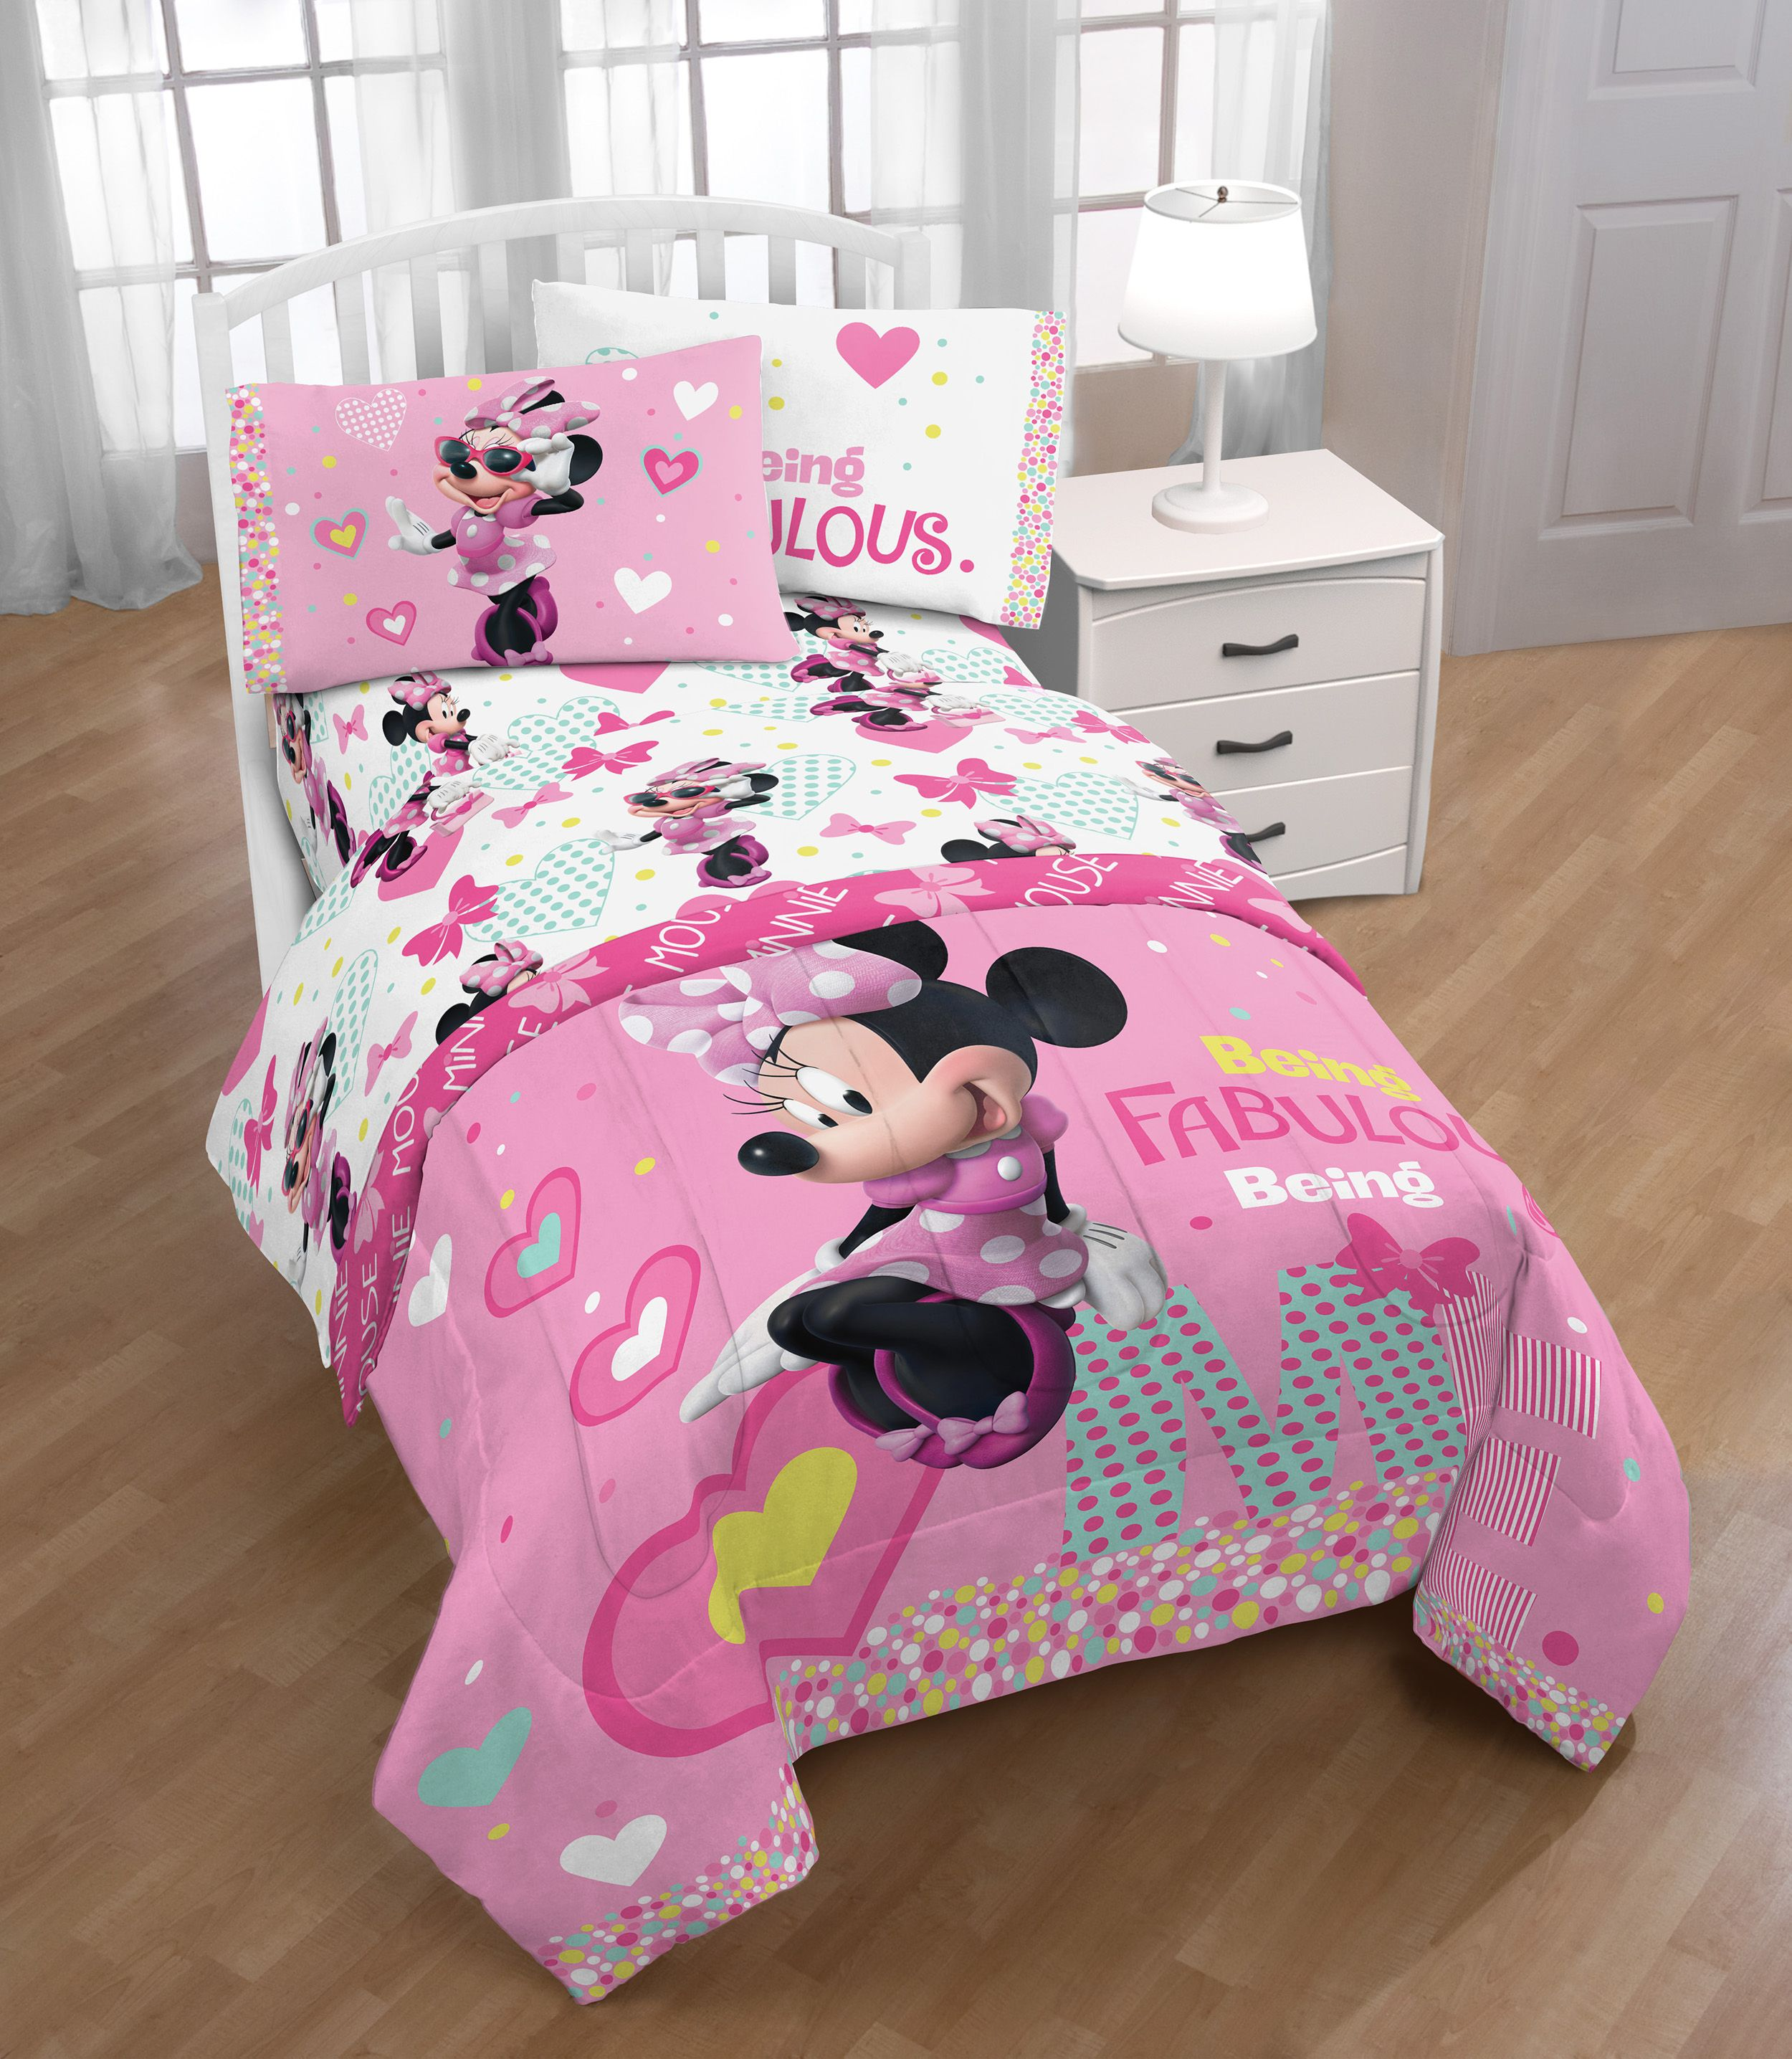 Disney Minnie /& mickey mouse Pink duvet cover set Bedding PERSONALISED